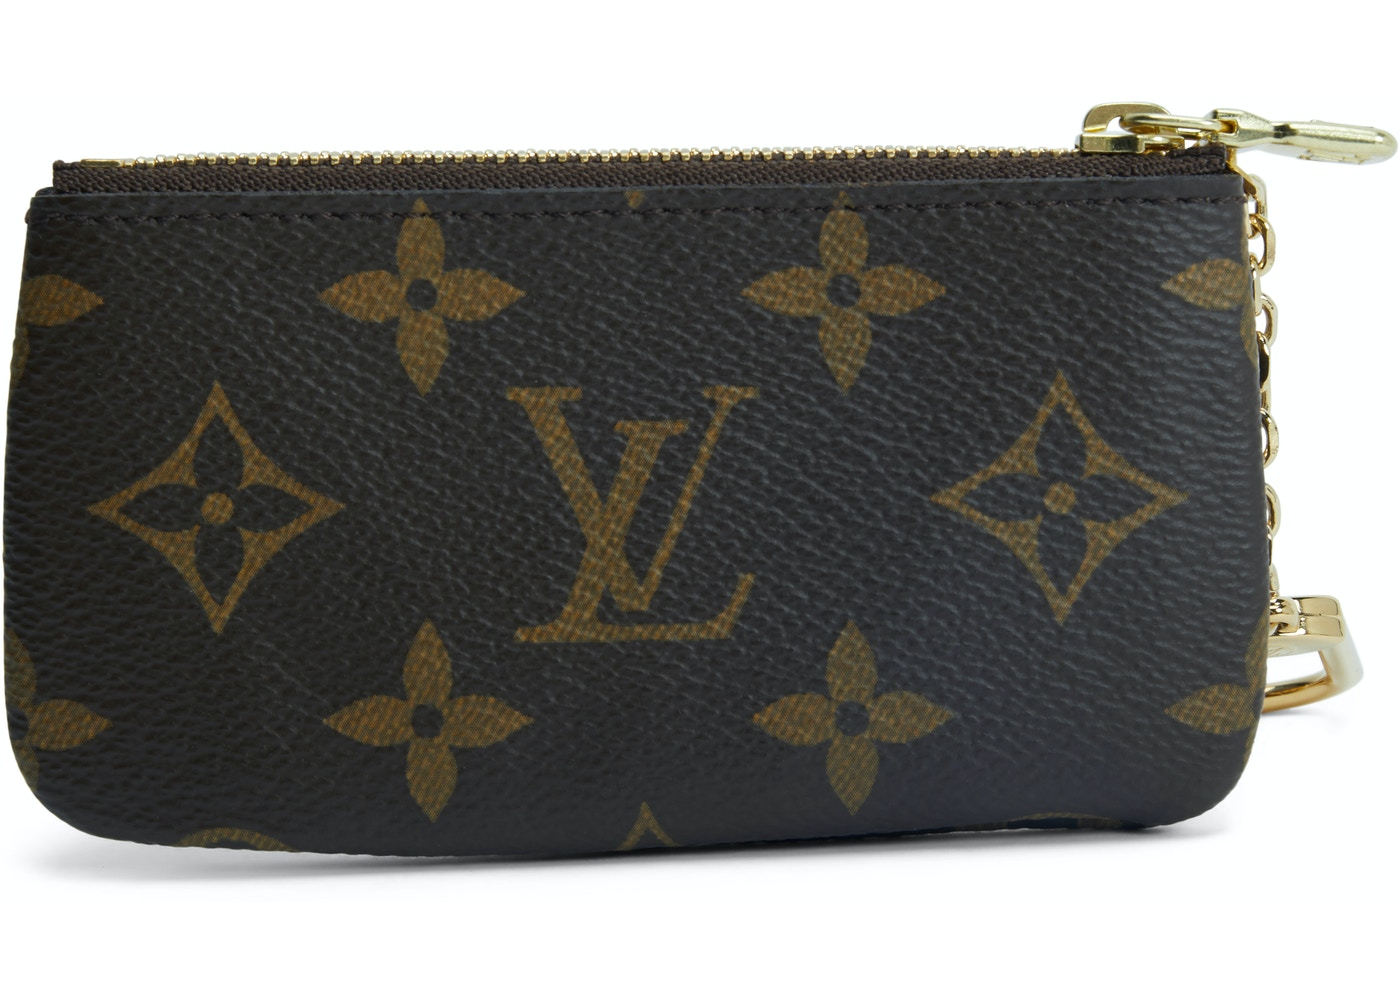 d07eb4f57fce Buy   Sell Louis Vuitton Luxury Handbags